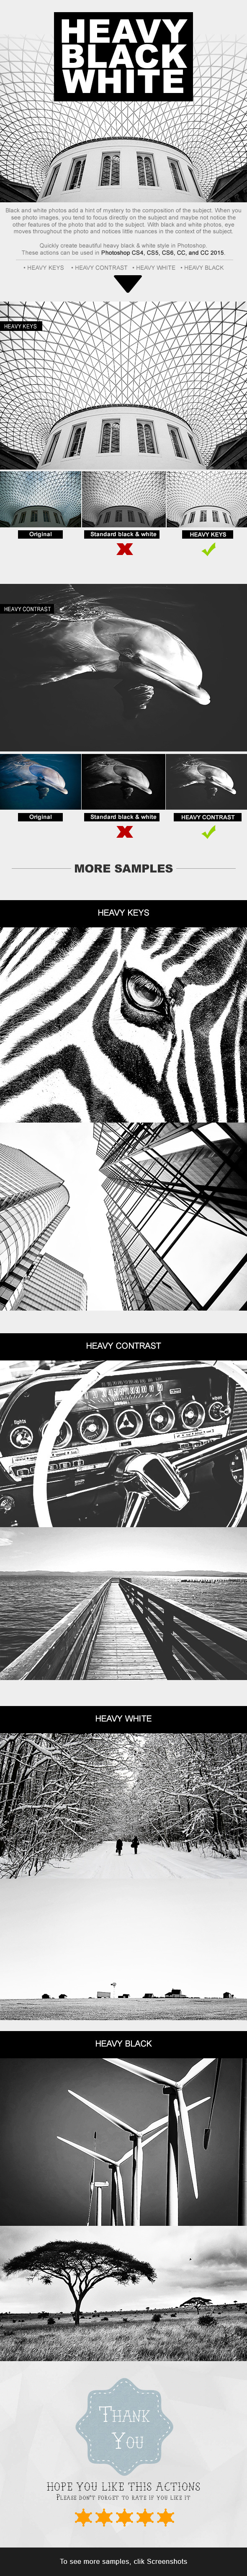 Heavy Black White Photoshop Actions - Photo Effects Actions